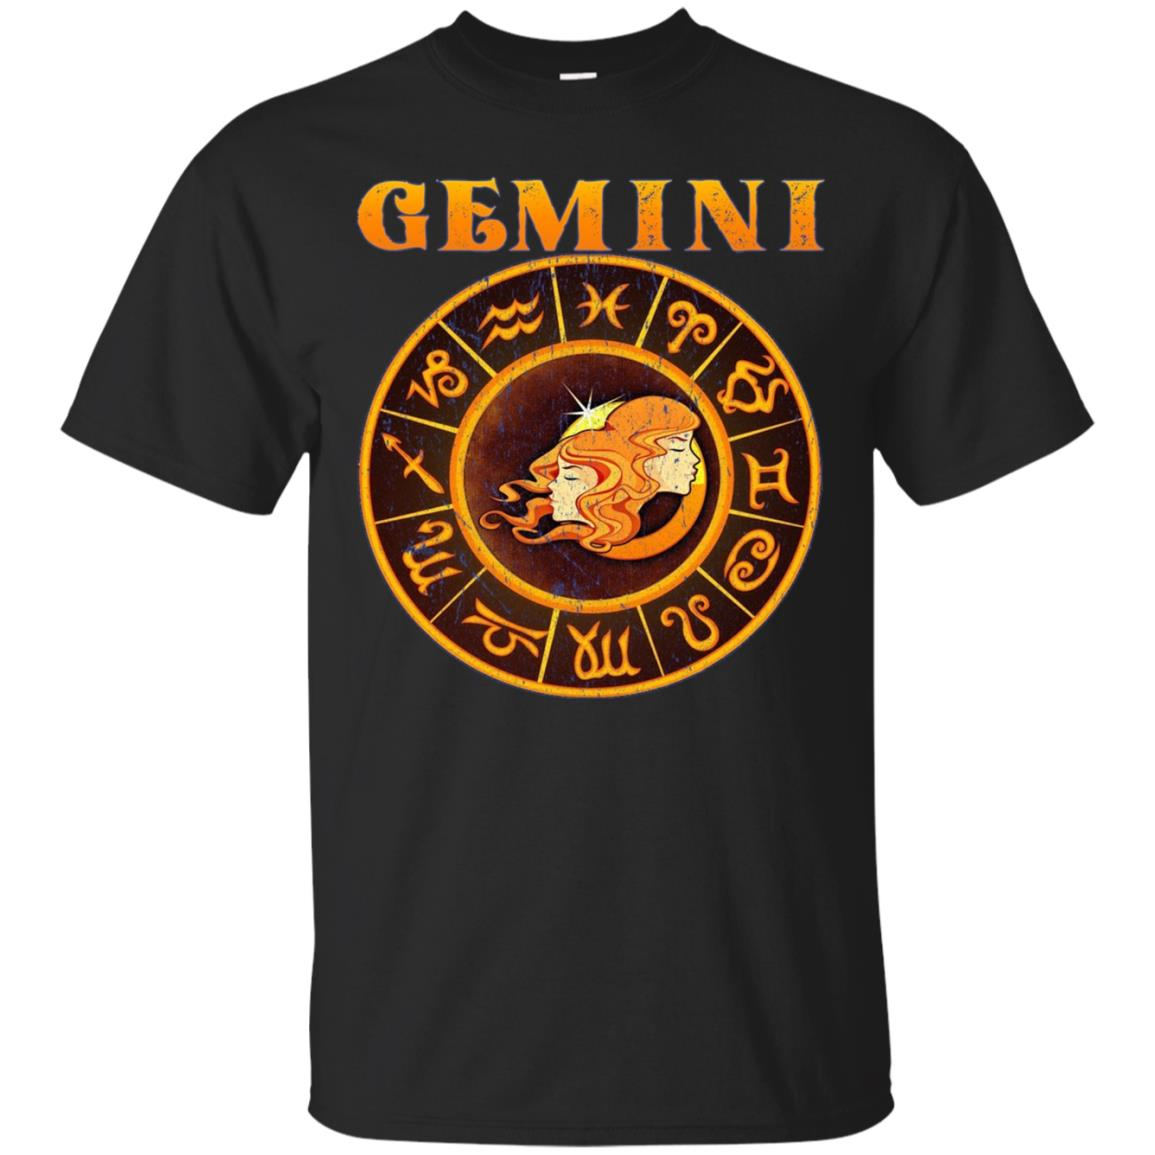 Gemini T-Shirt Long Sleeve Zodiac Astrology Sign